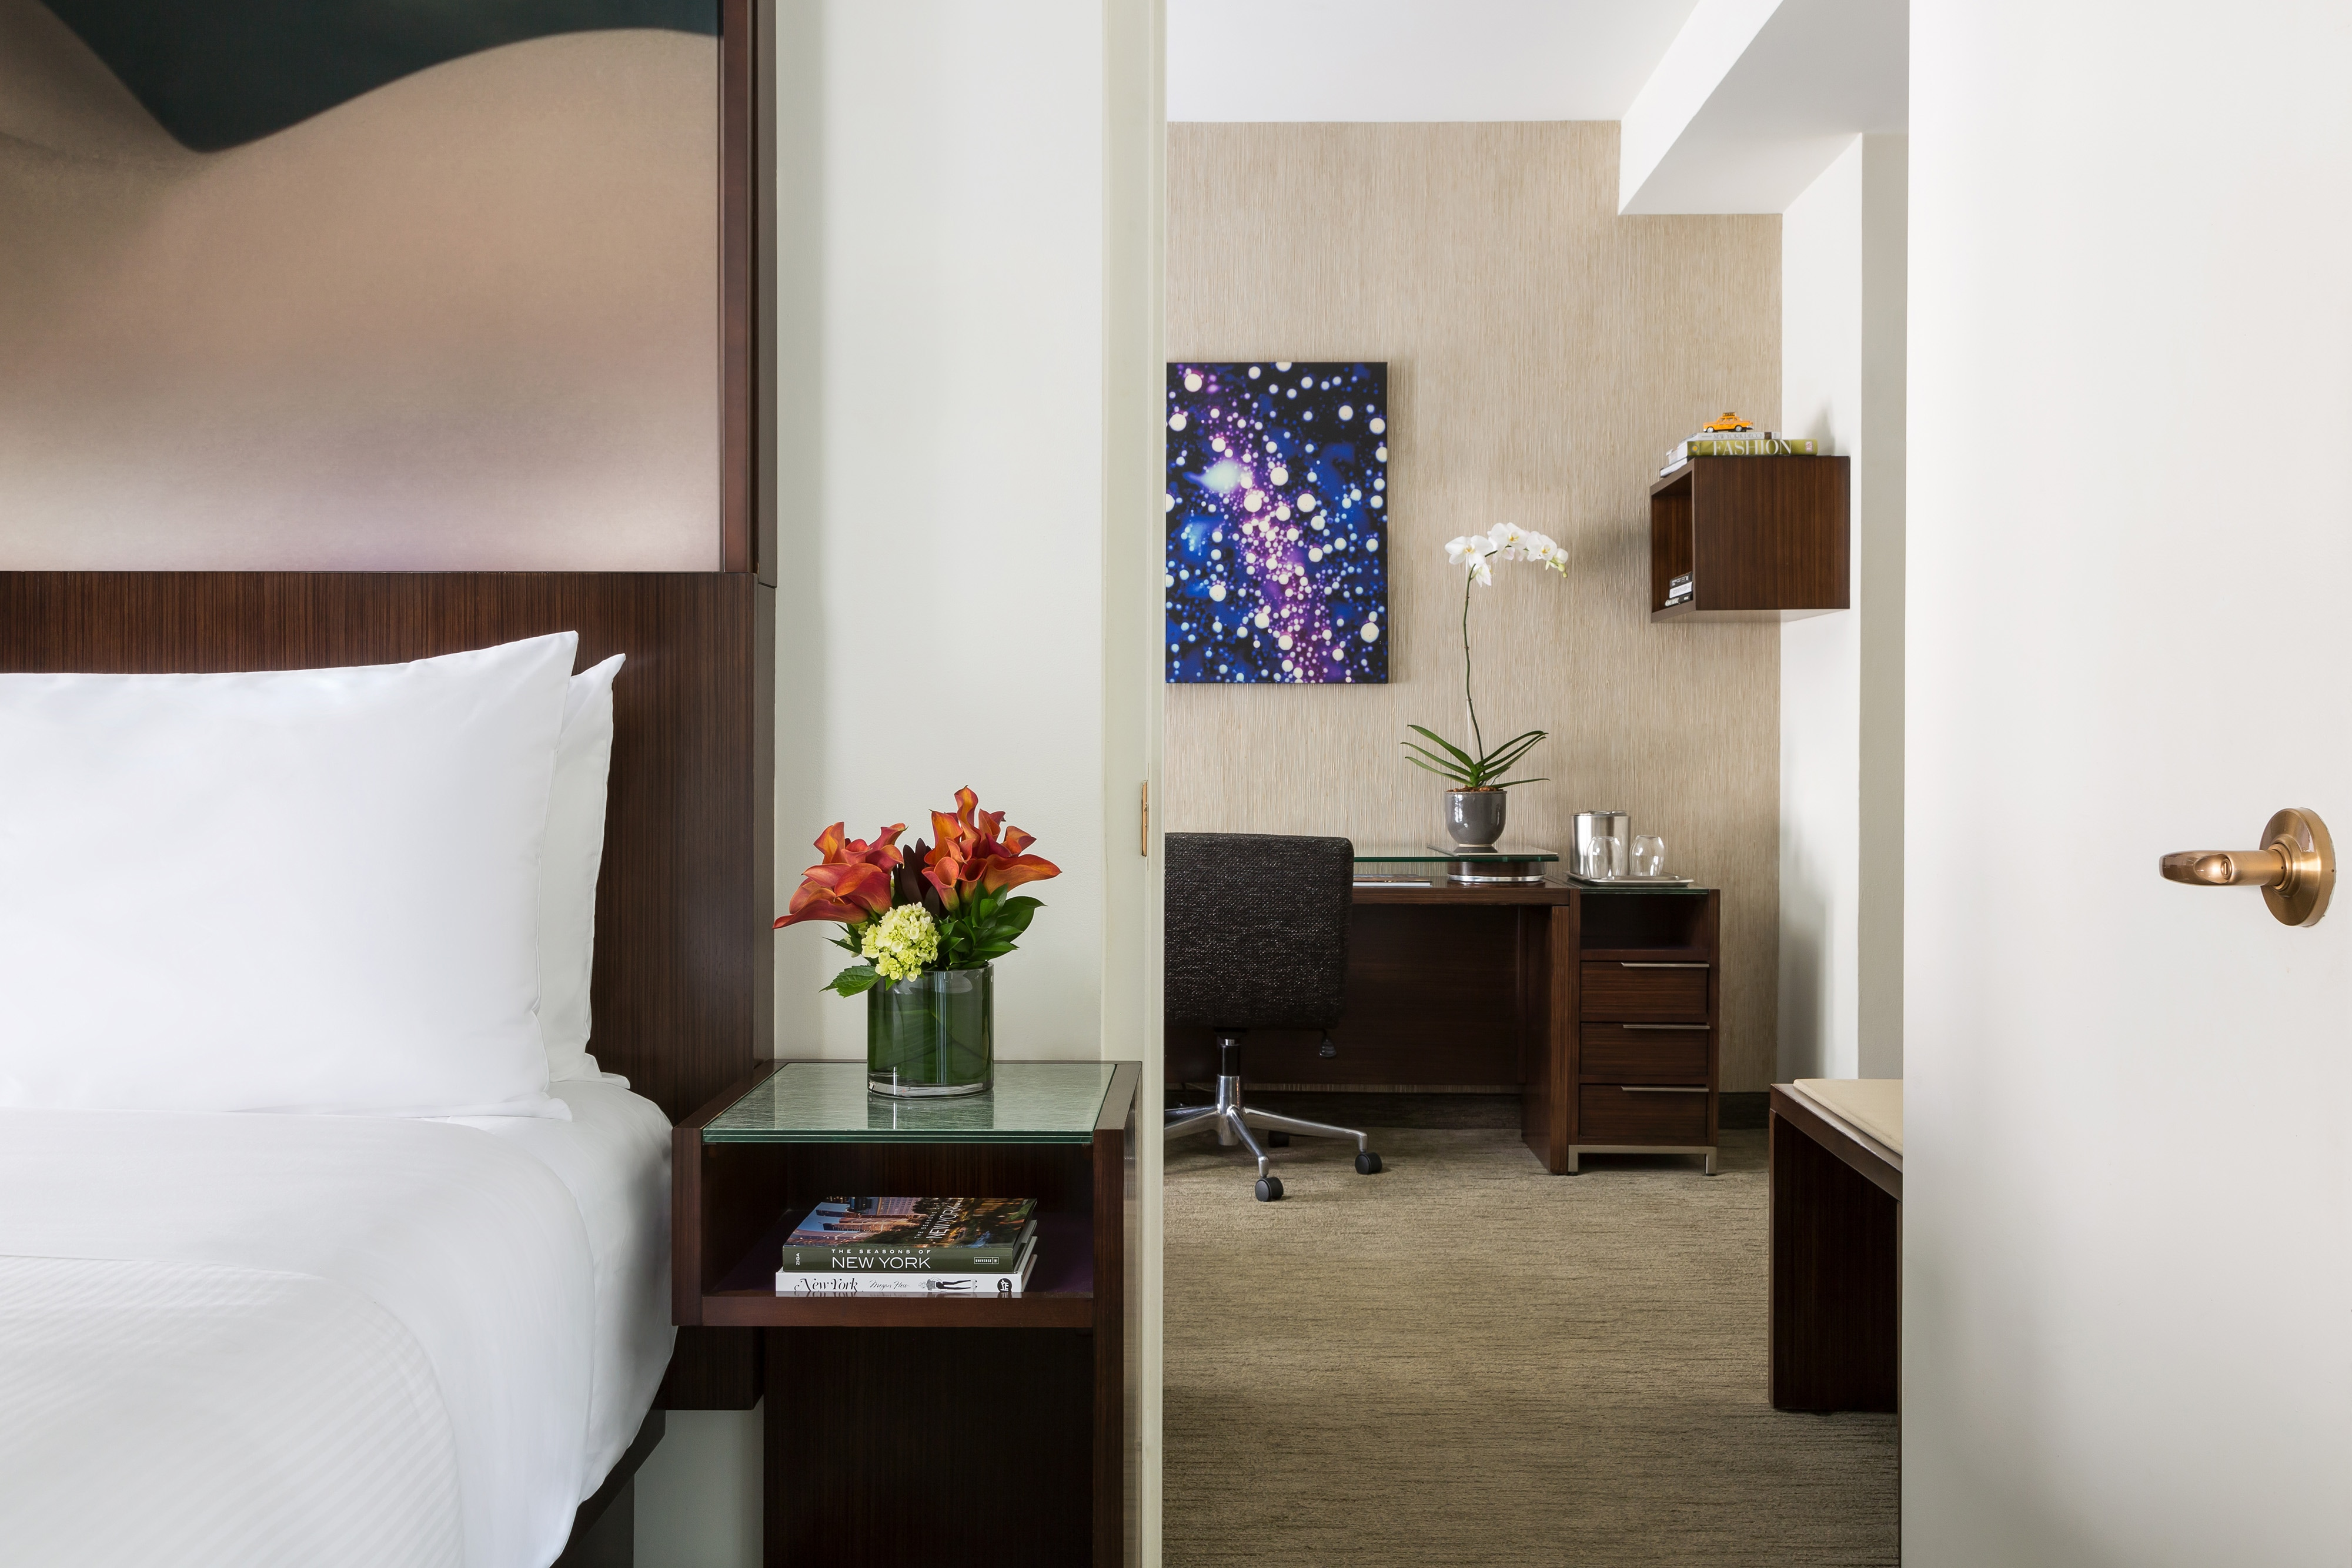 Midtown manhattan hotel rooms the maxwell new york city - Hotel suites new york city 2 bedrooms ...